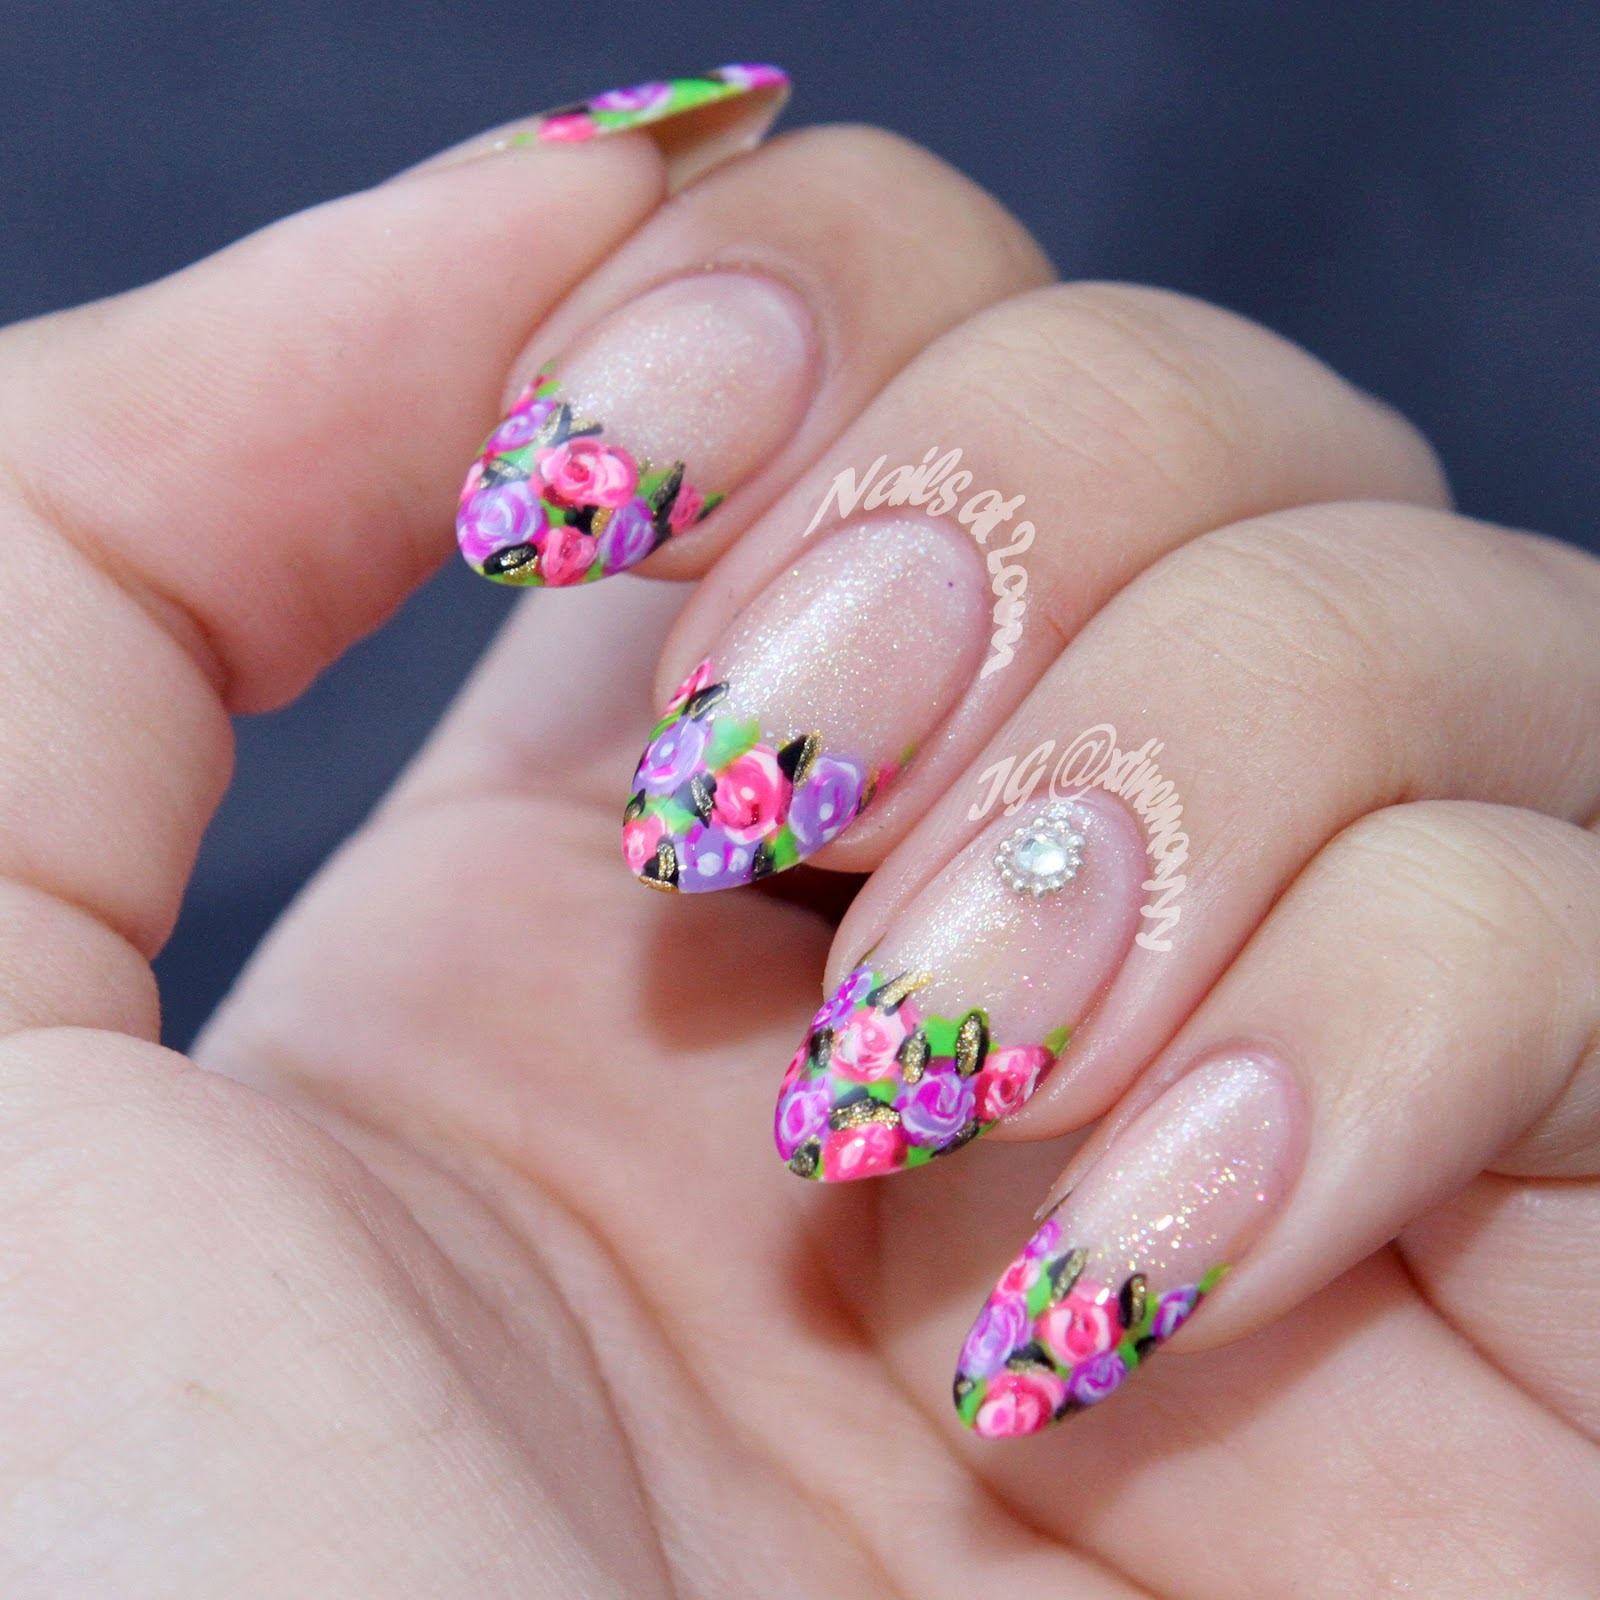 Nails At 2am: Floral French Tip + Tutorial